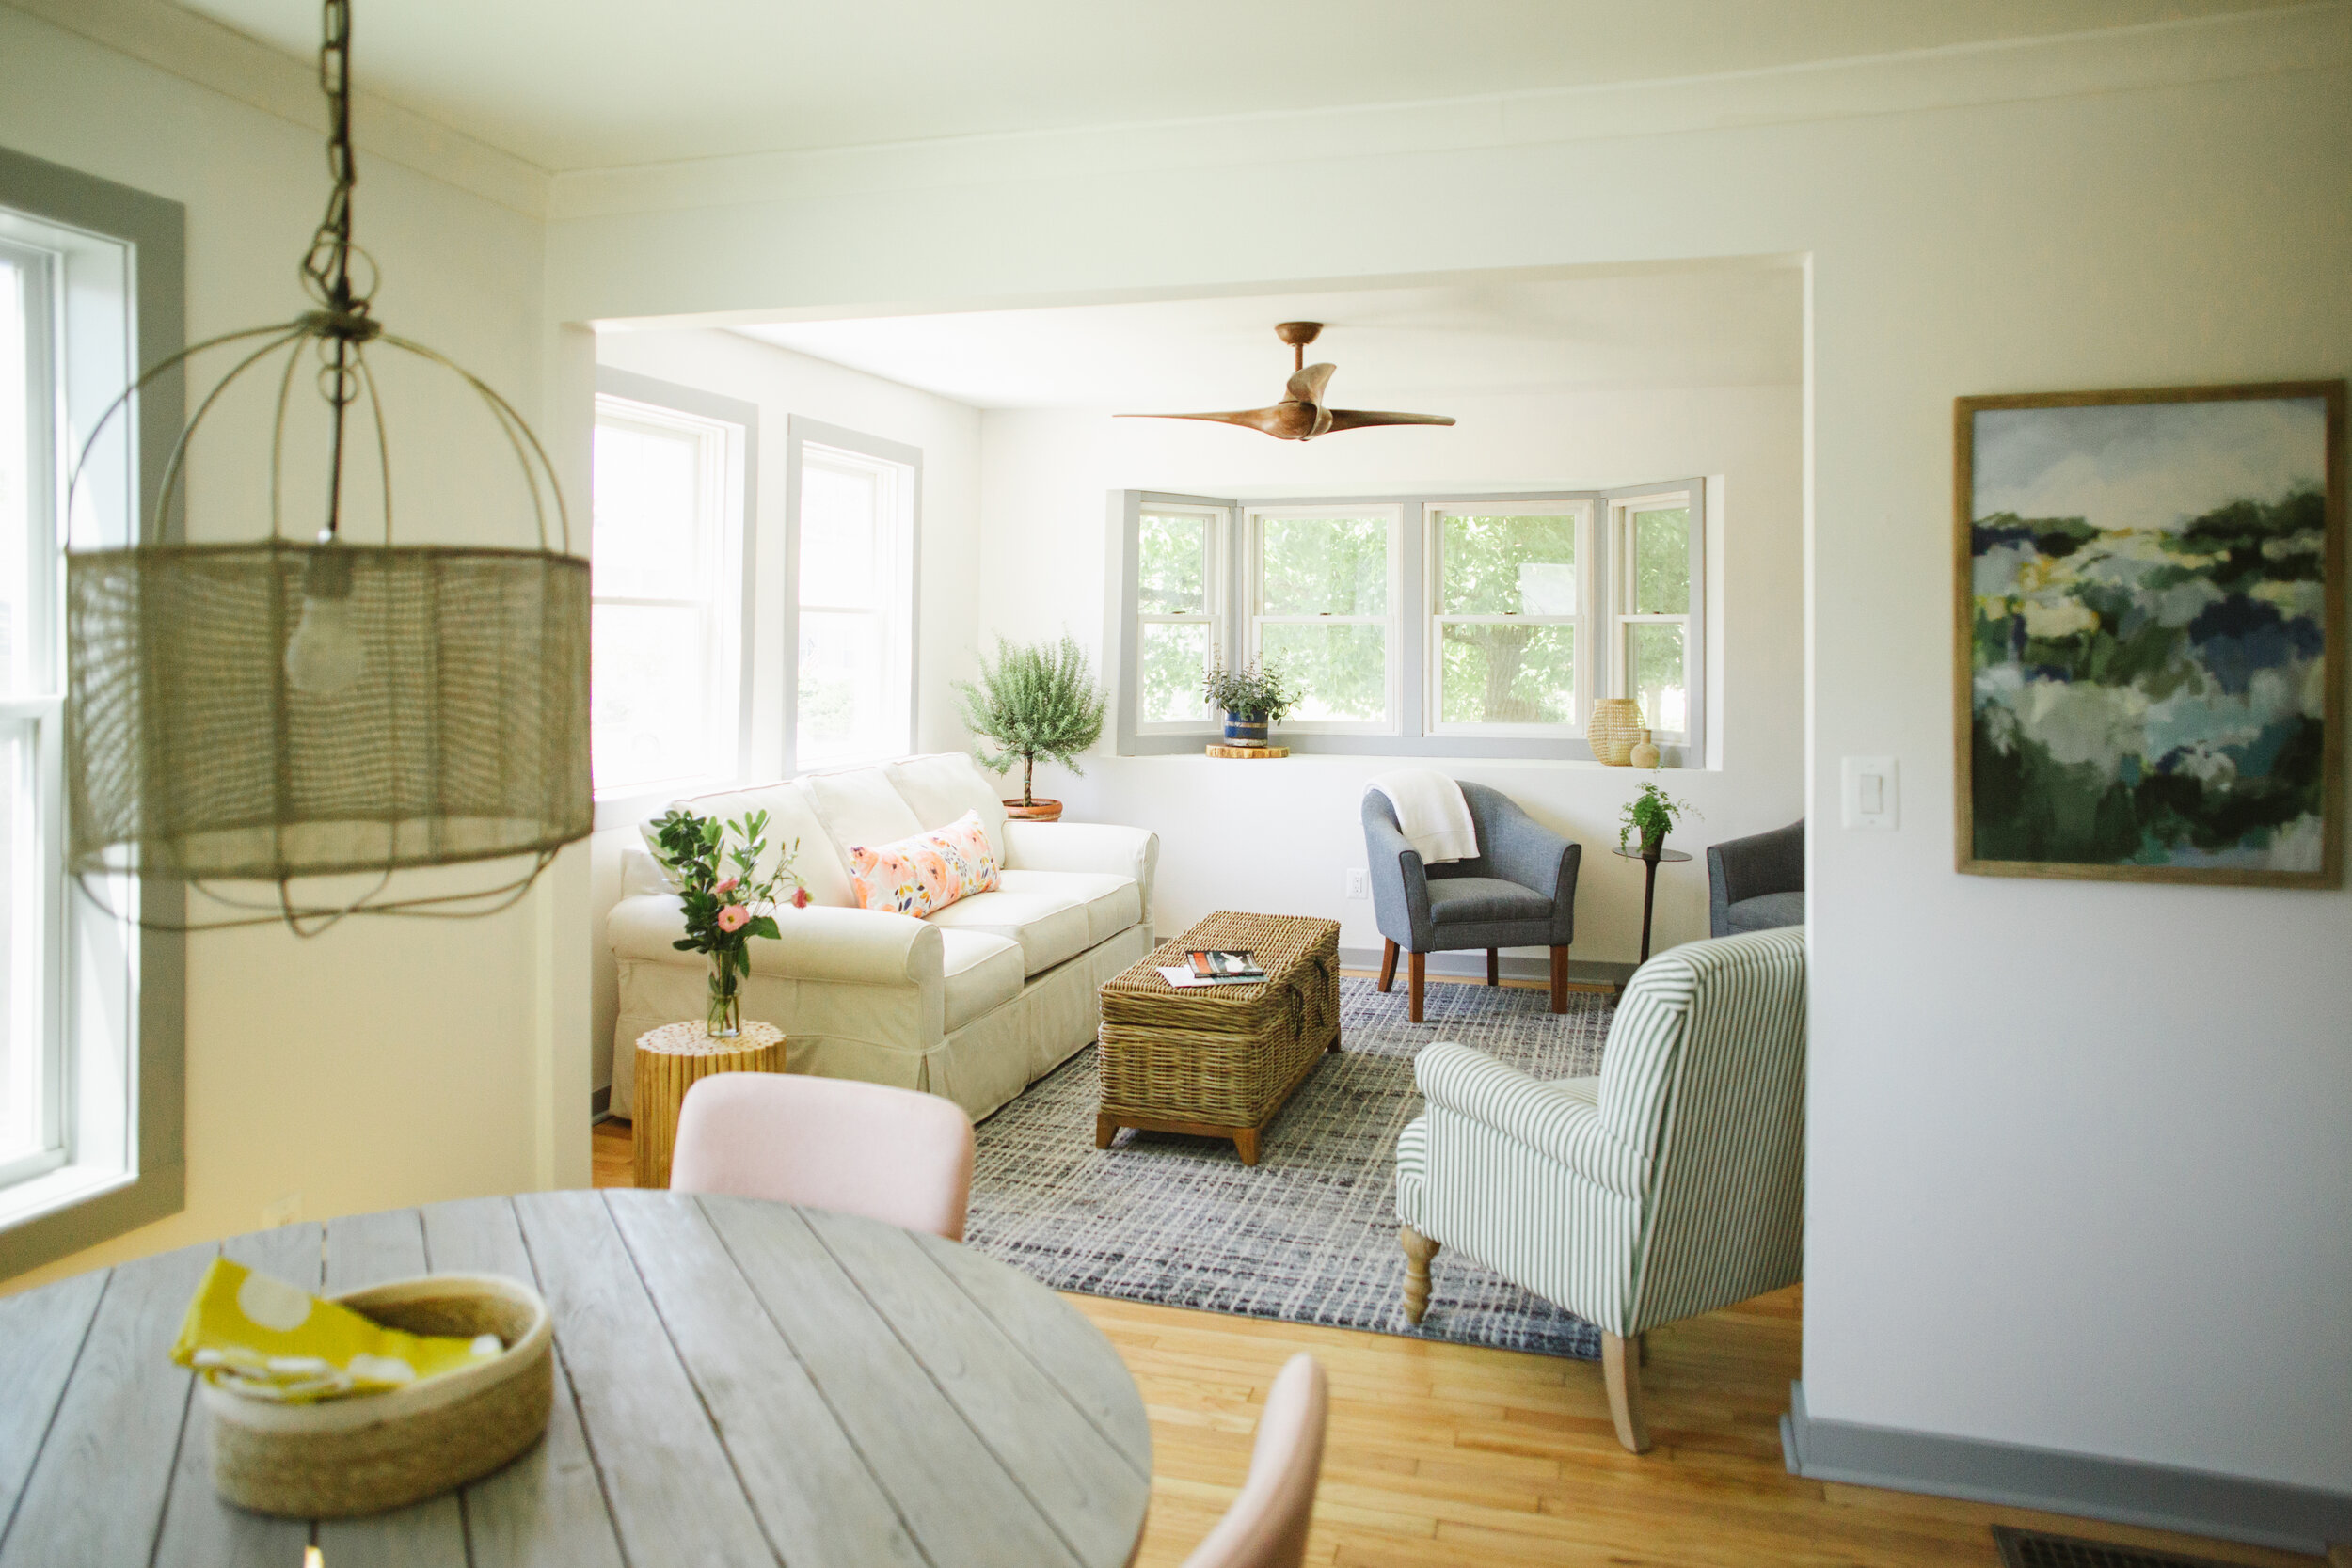 We turned a distressed property into an Airbnb.